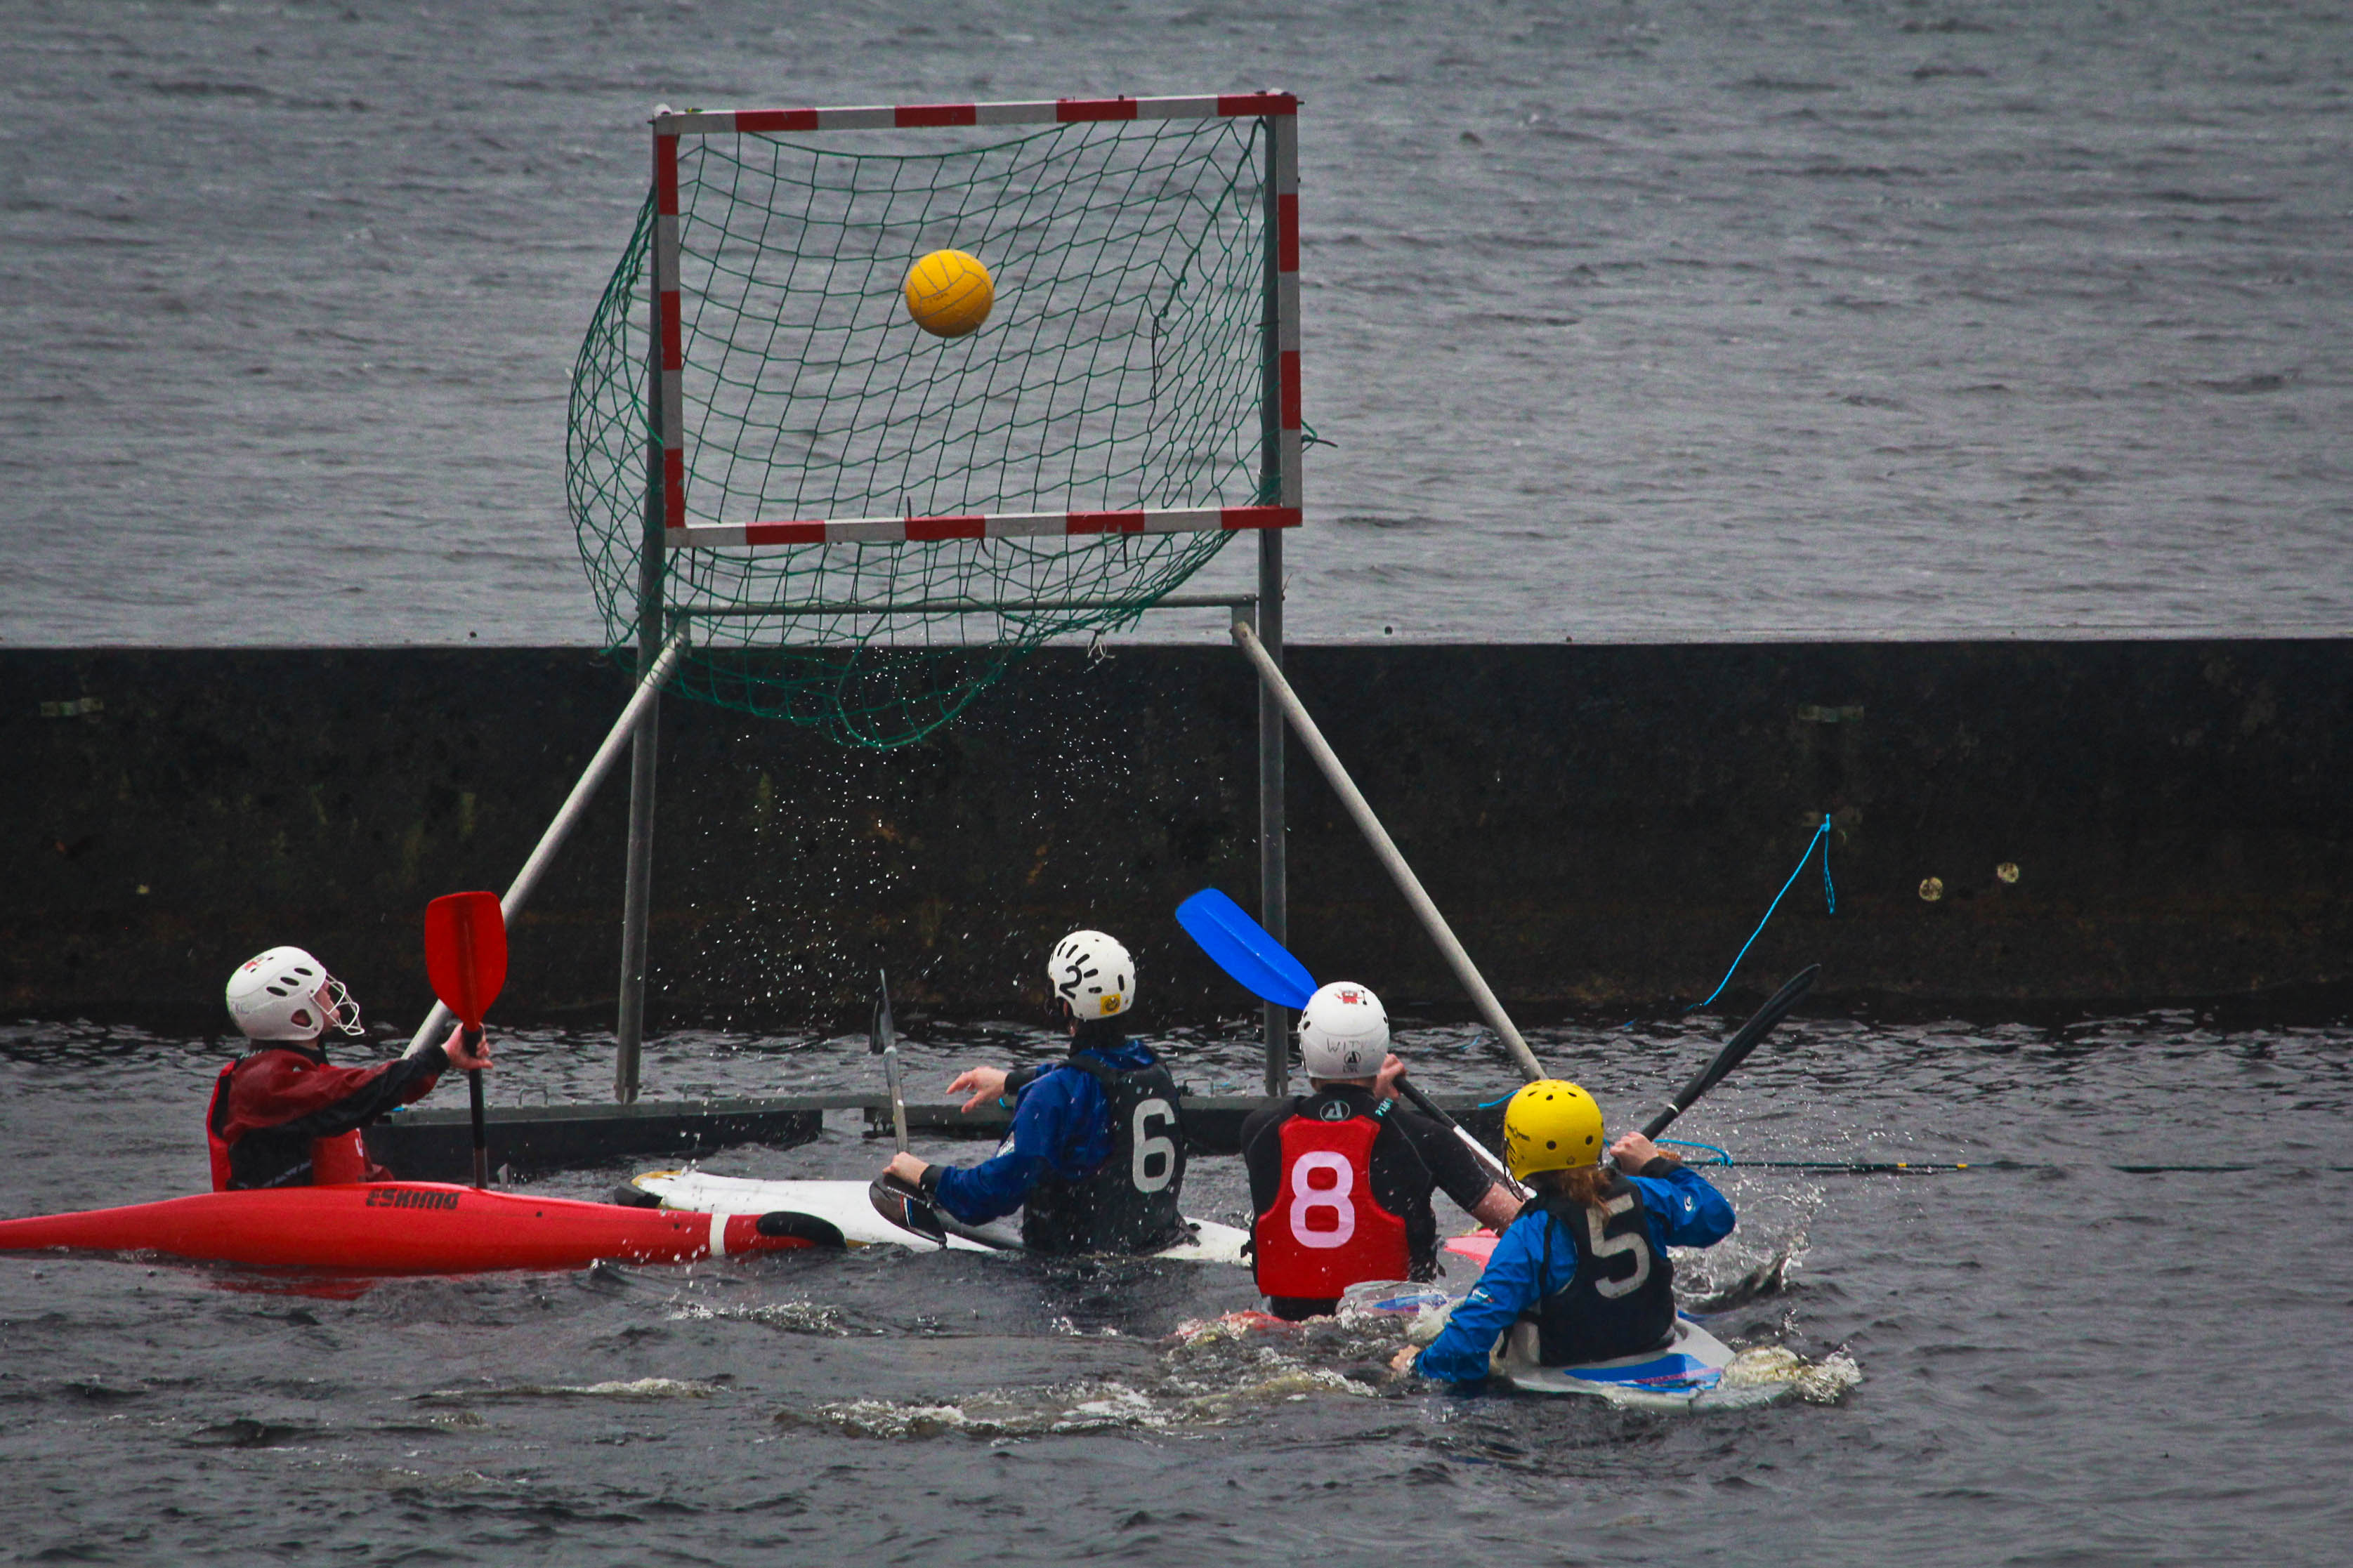 action_form_the_kayak_polo.jpg